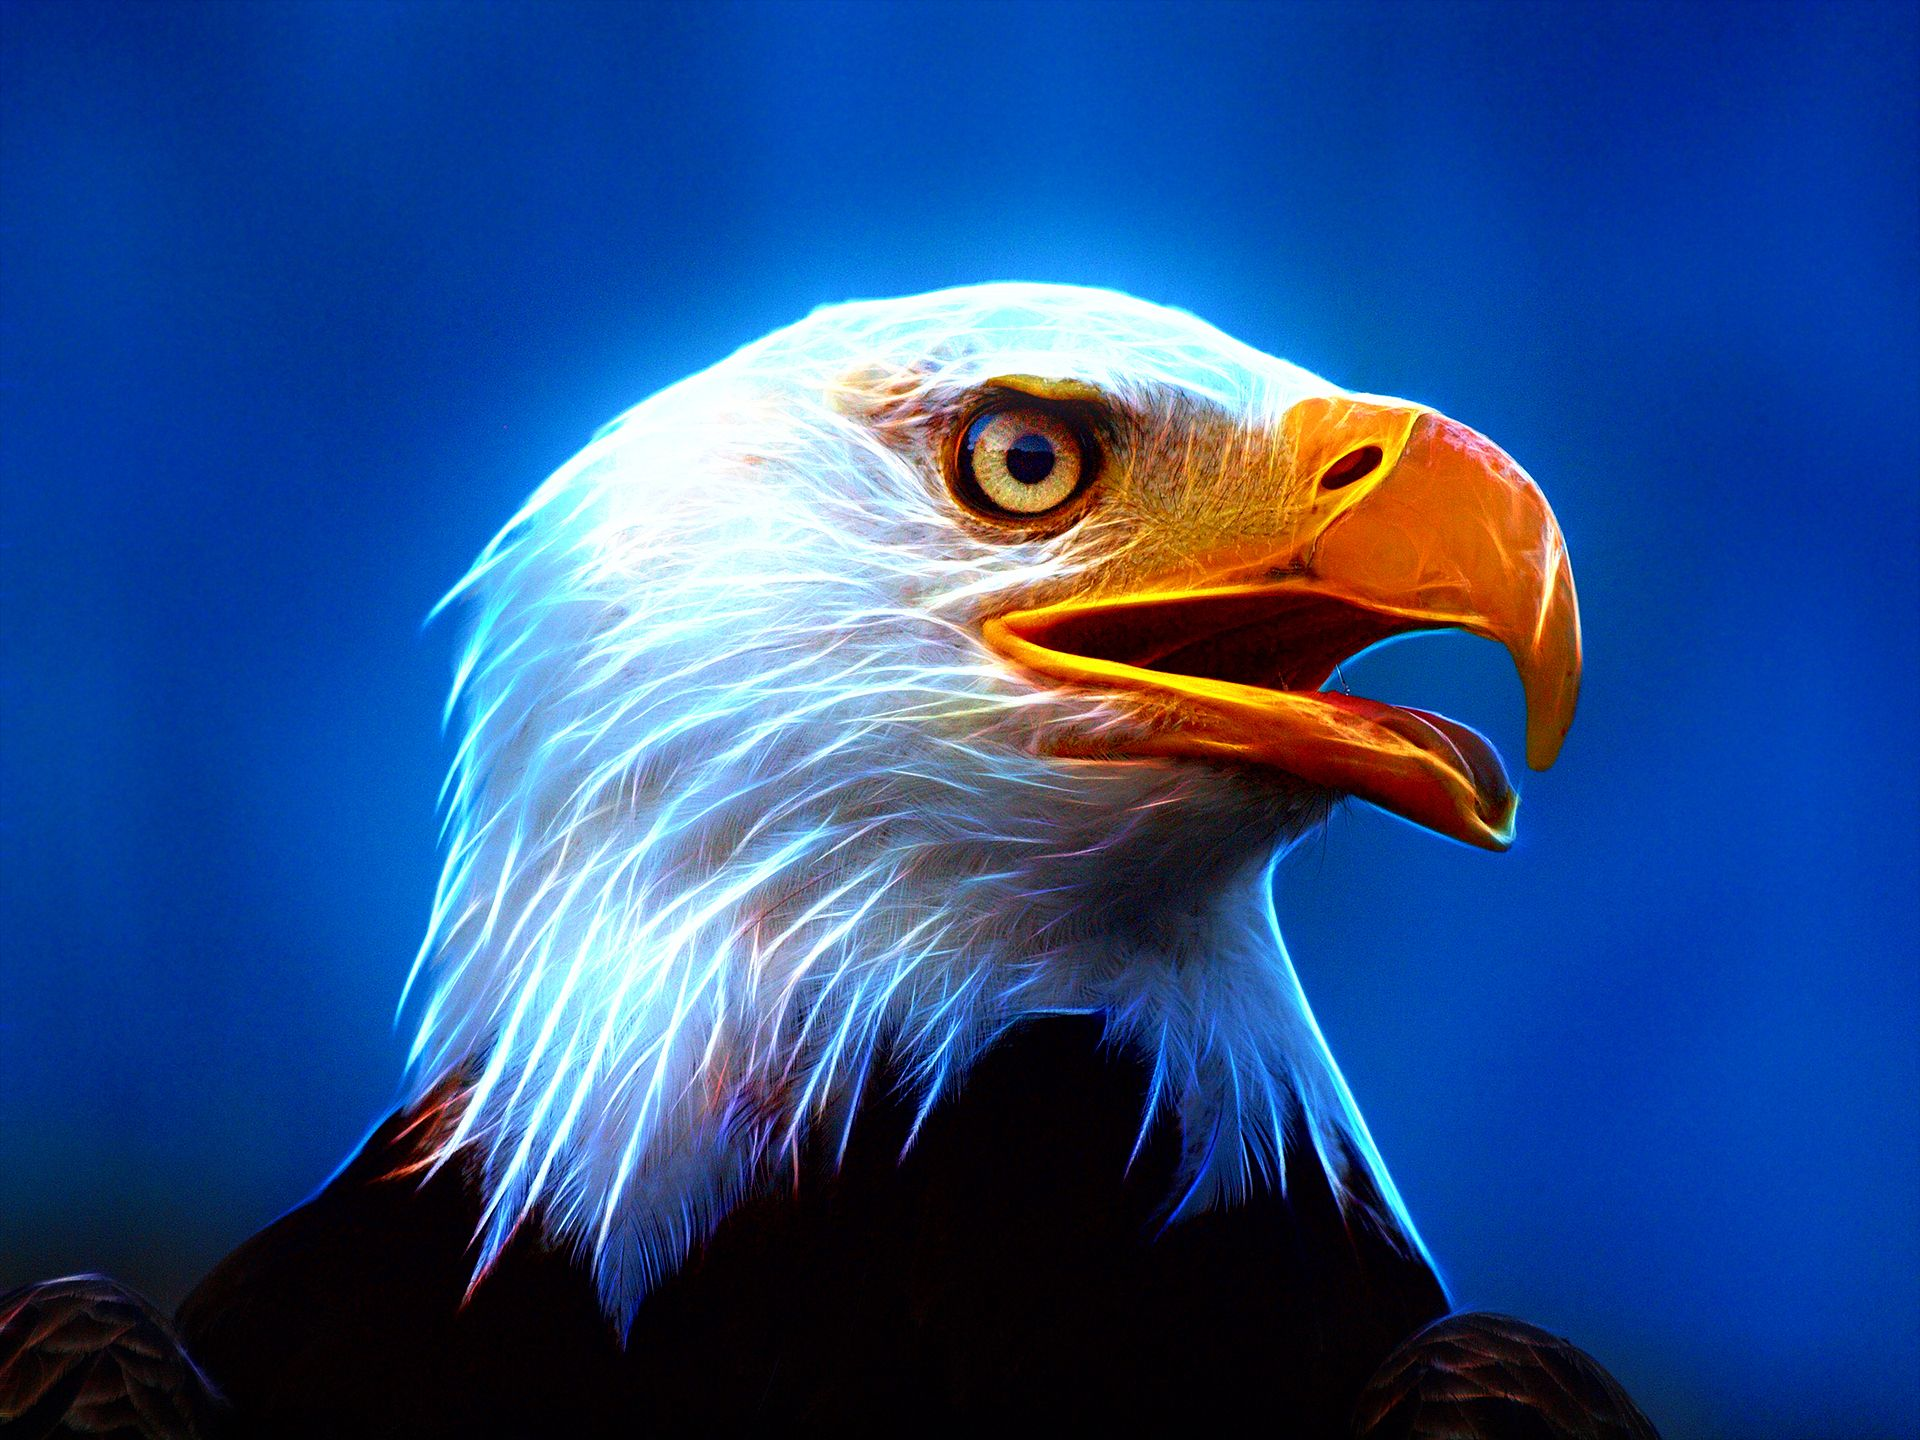 Eagle Wallpapers Download Eagle HD Wallpapers for Free GuoGuiyan